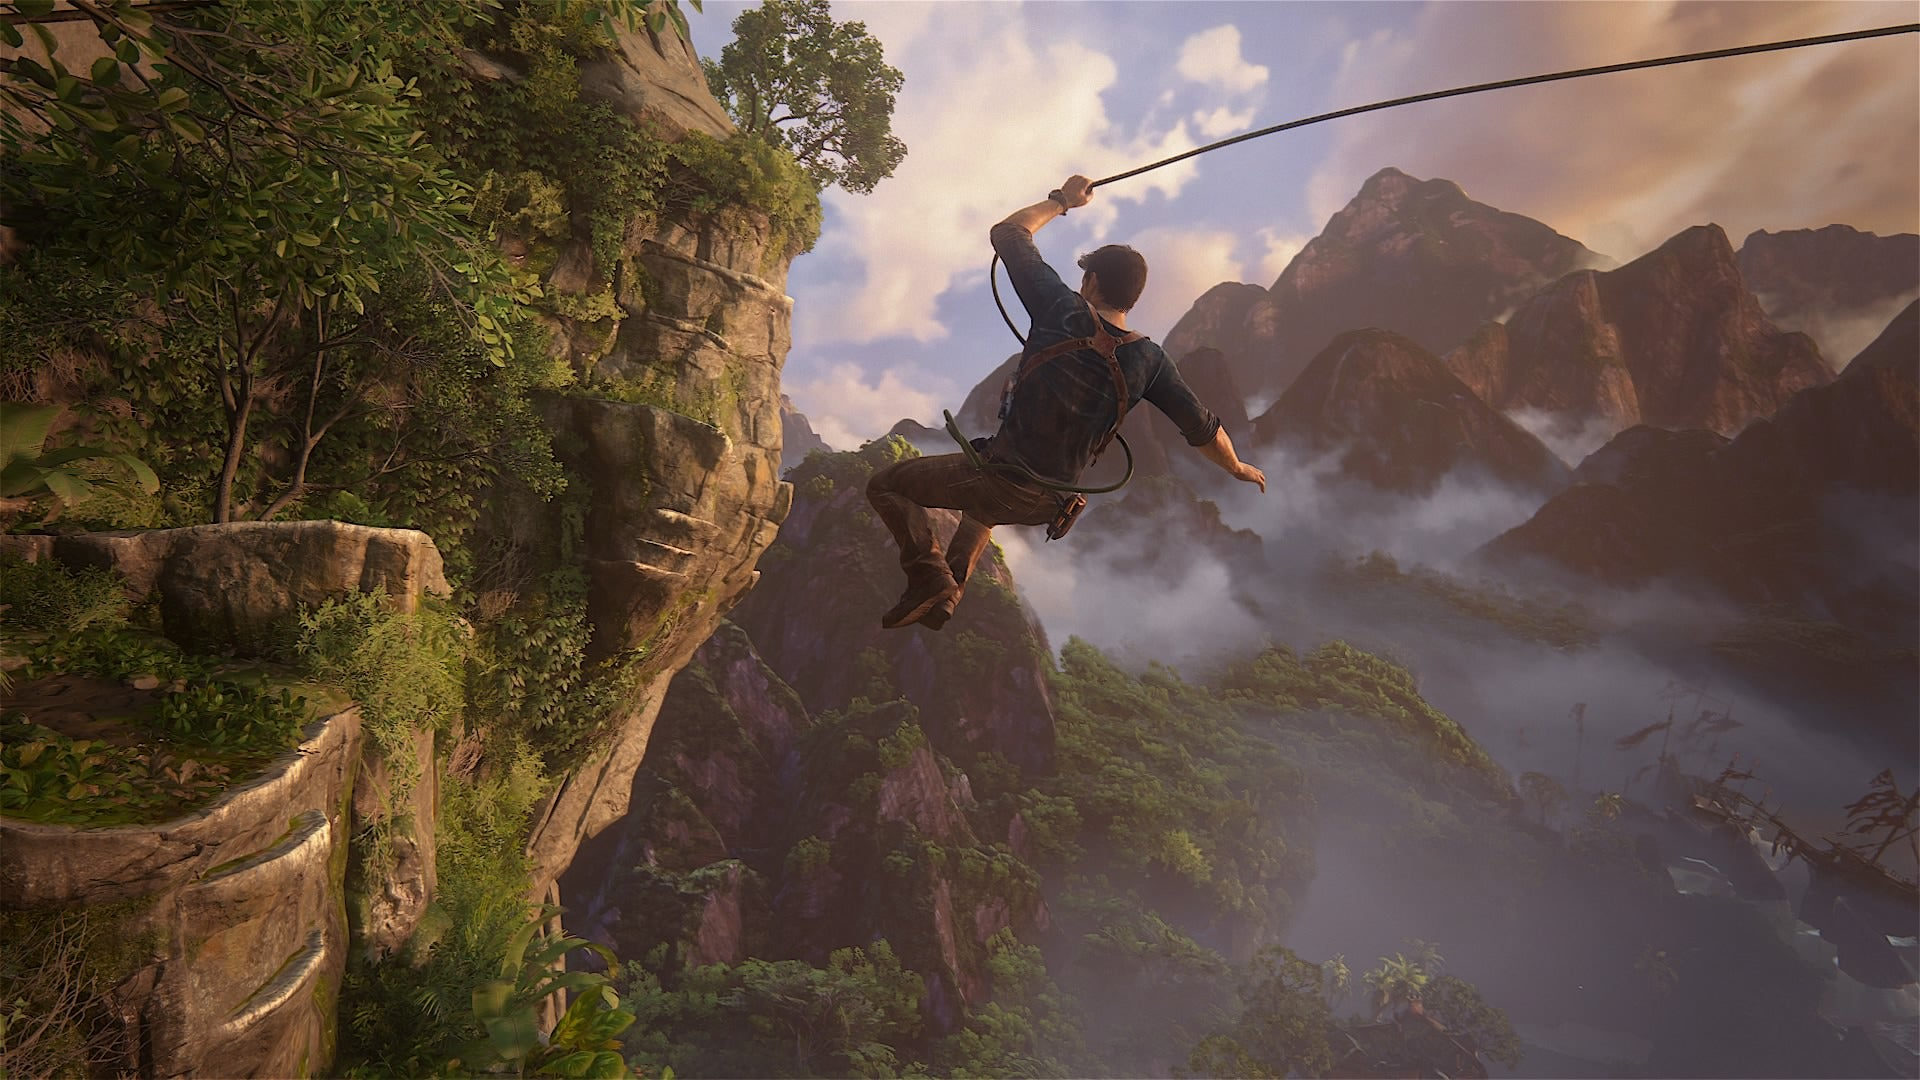 The Gallery Of Uncharted 4's Stunning Photo Mode Art